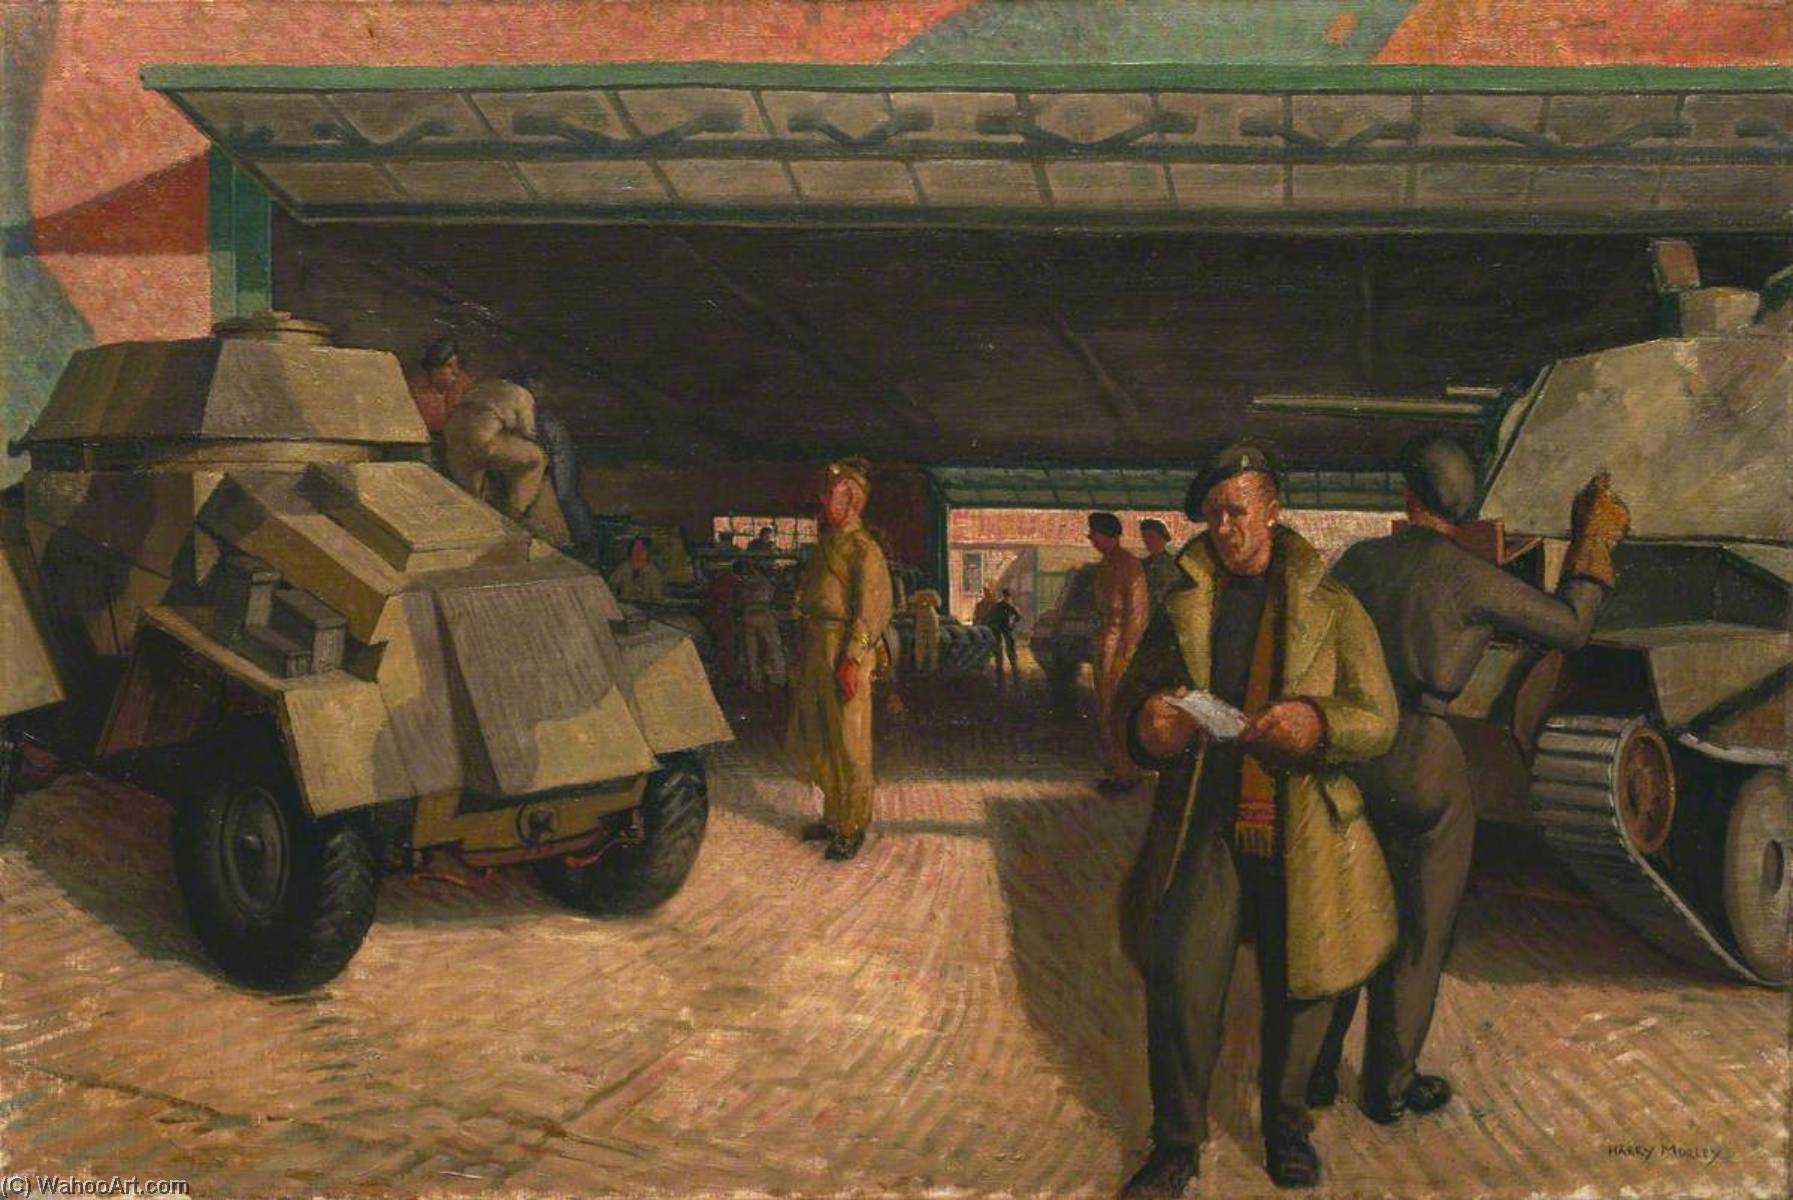 Wikioo.org - The Encyclopedia of Fine Arts - Painting, Artwork by Harry Morley - The Tank Park